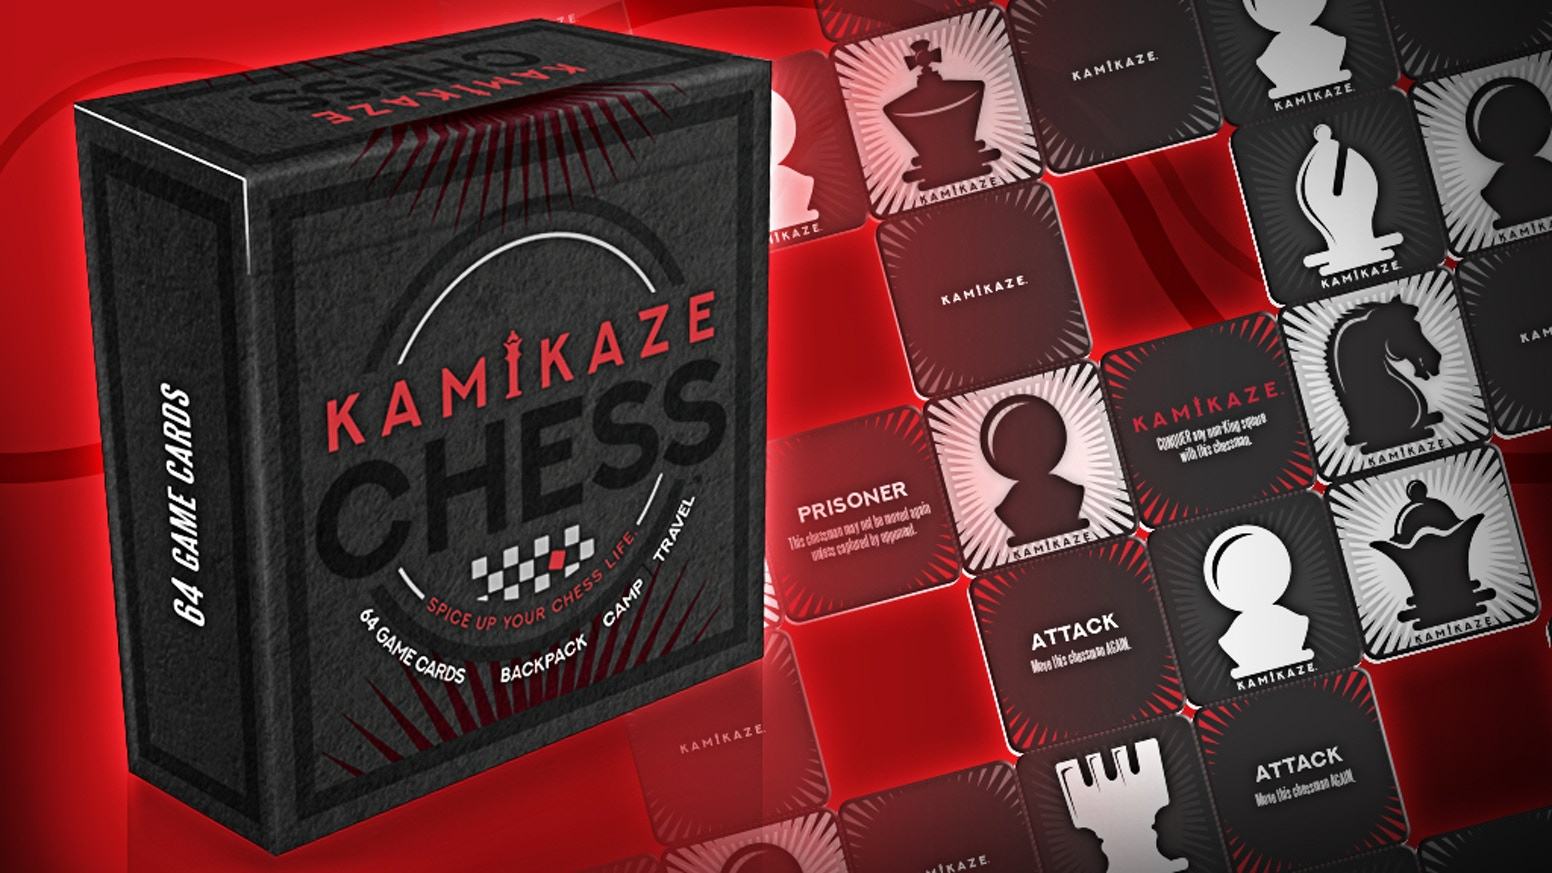 Accelerated variant deck of multi-functional Chess Cards. Add into real games or take as an all-in-one travel Chess set + 'board'!